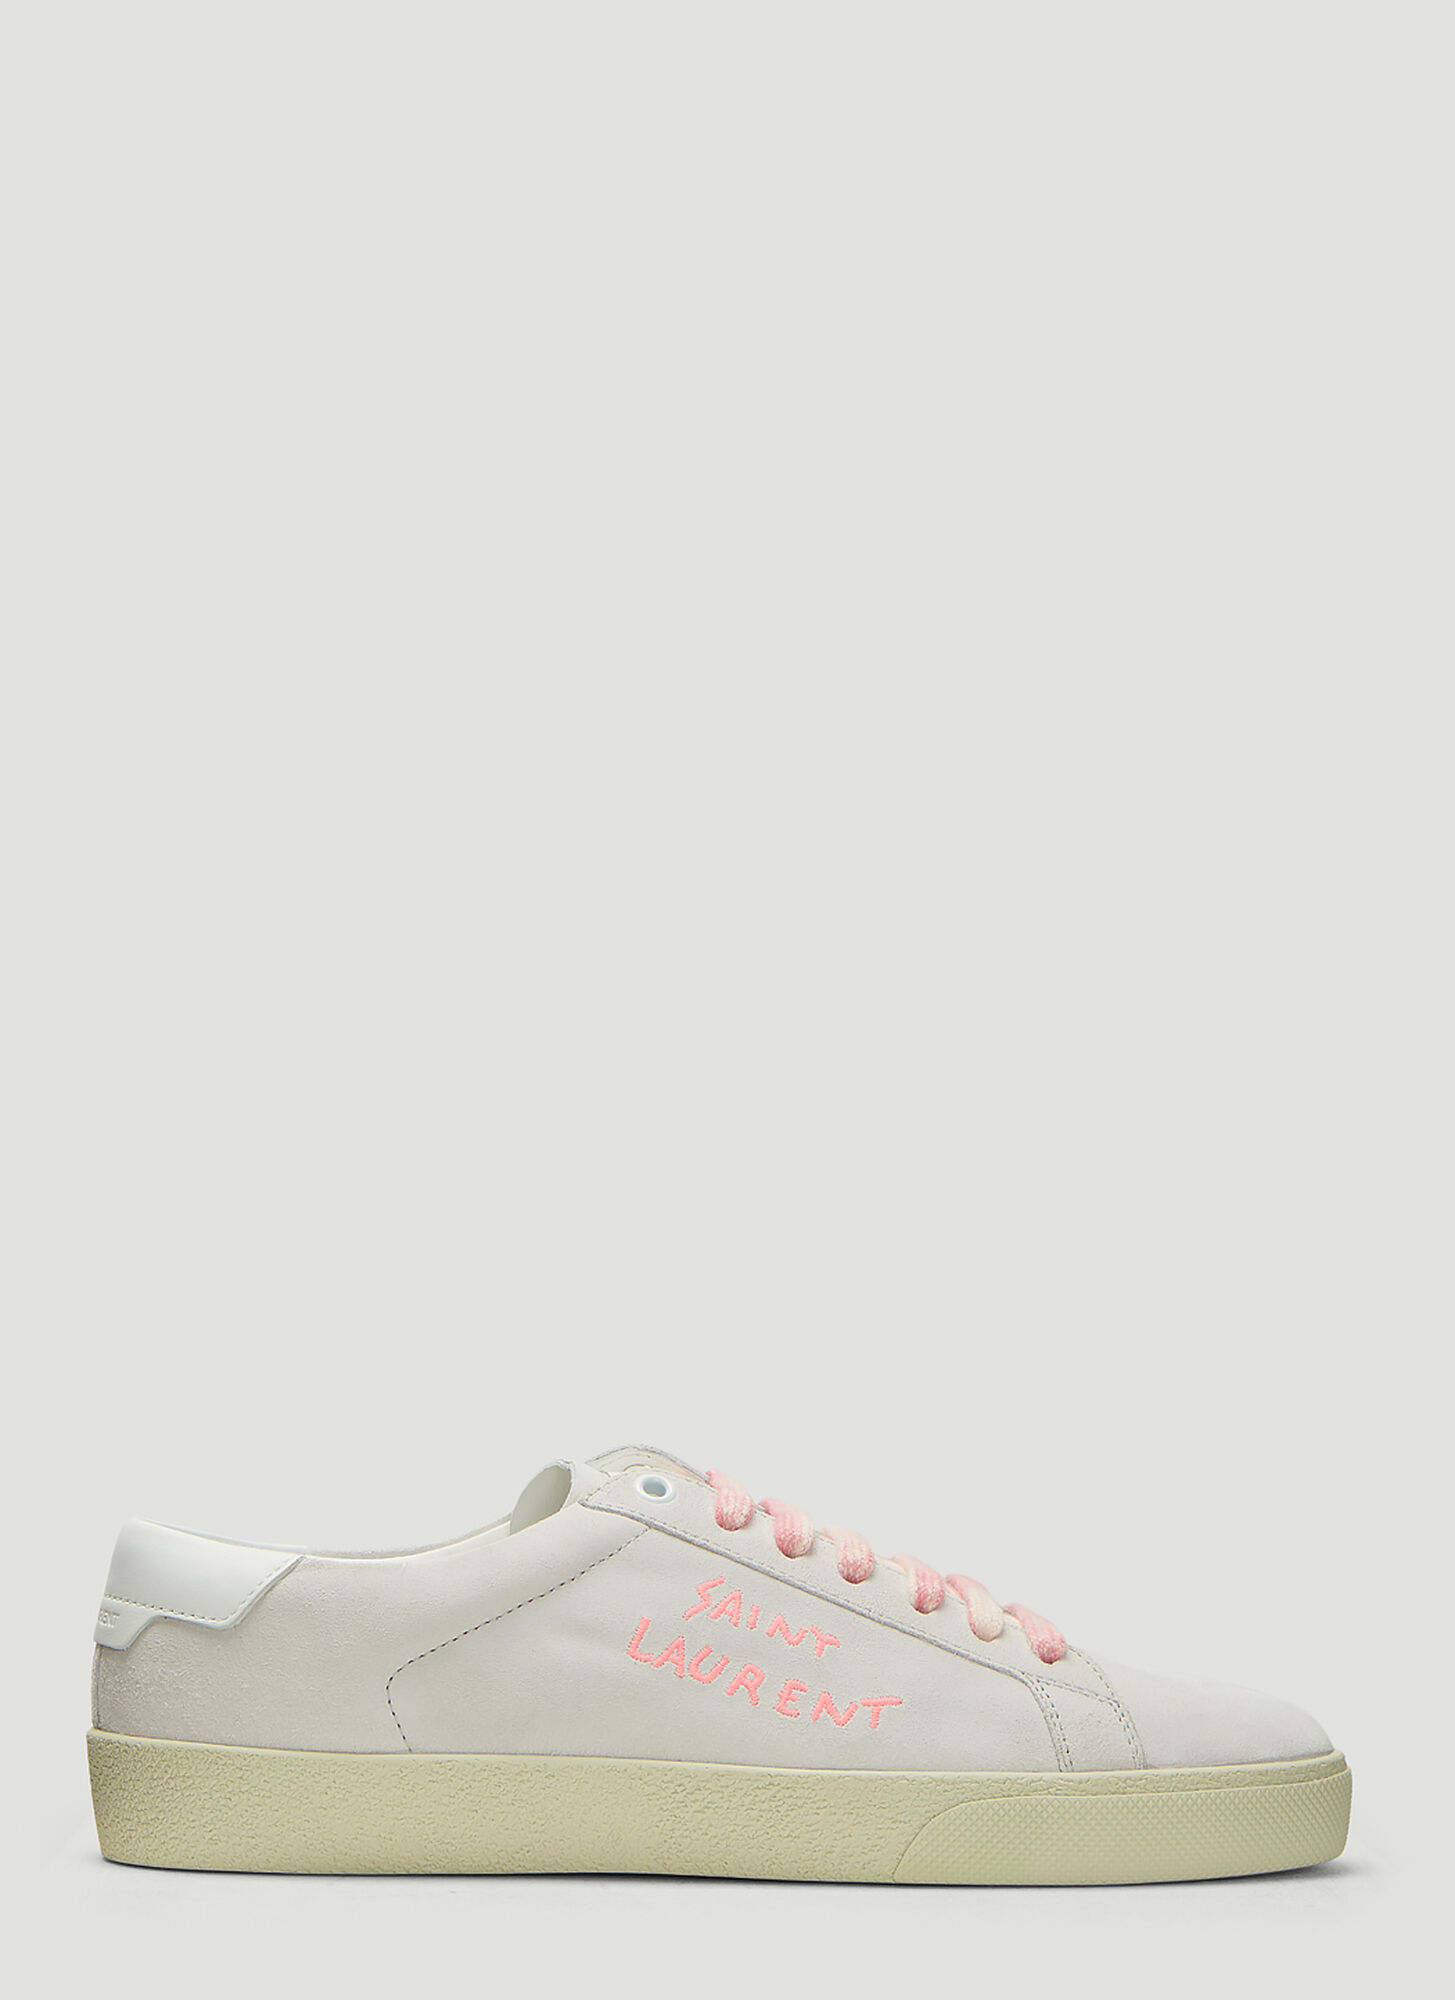 Photo of Saint Laurent Court Classic SL/06 Embroidered Sneakers in White - Saint Laurent Sneakers